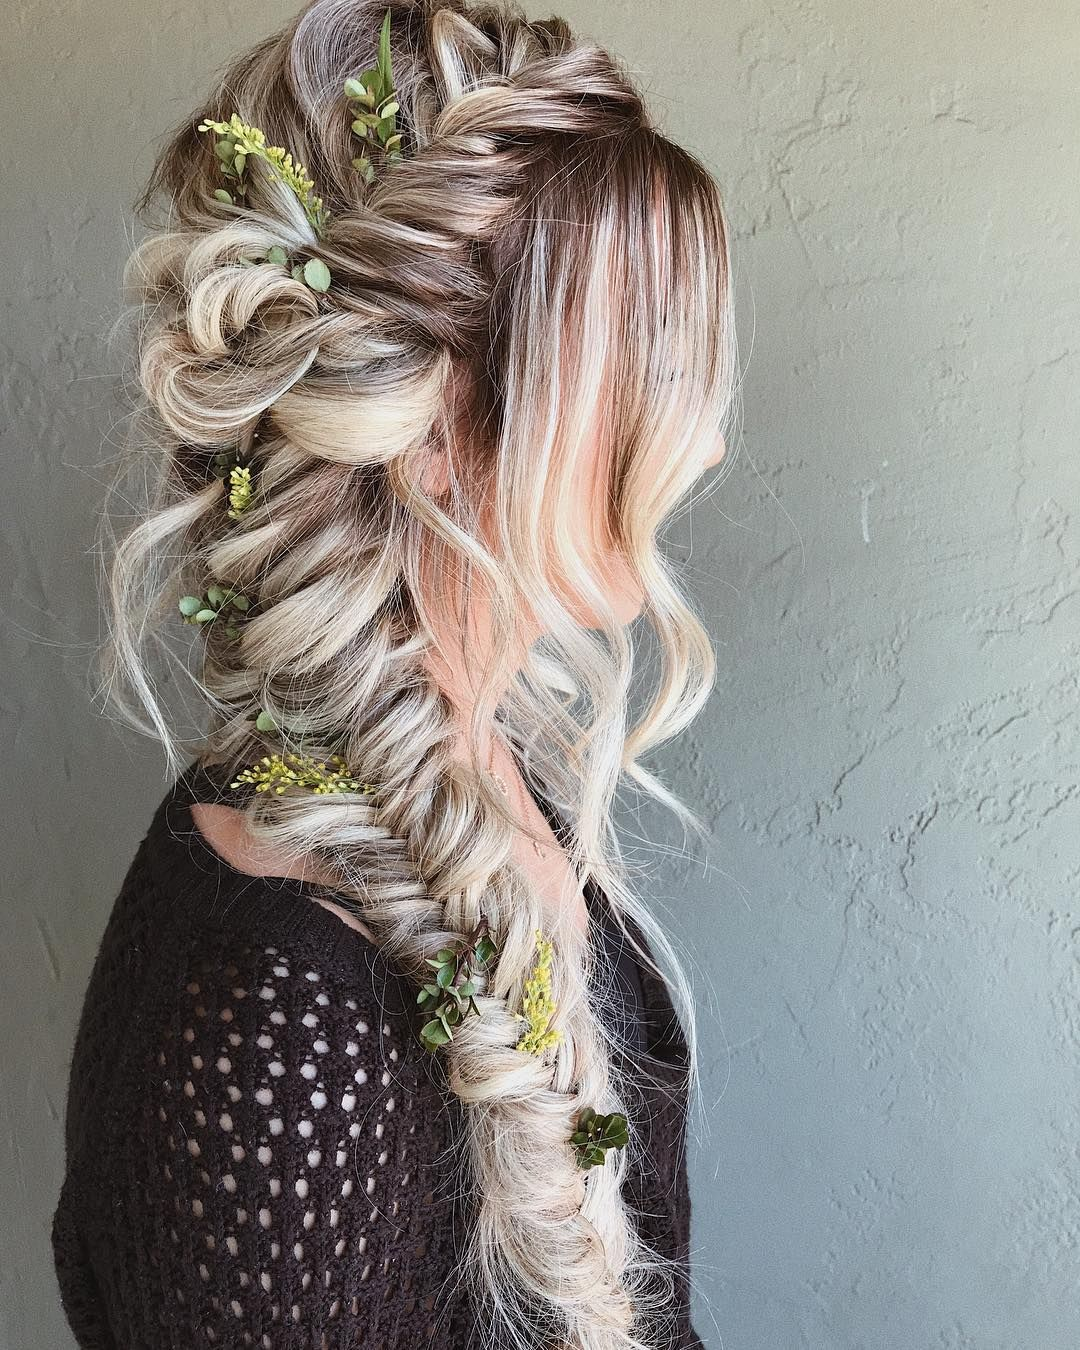 Boho Braids half up half down hairstyle